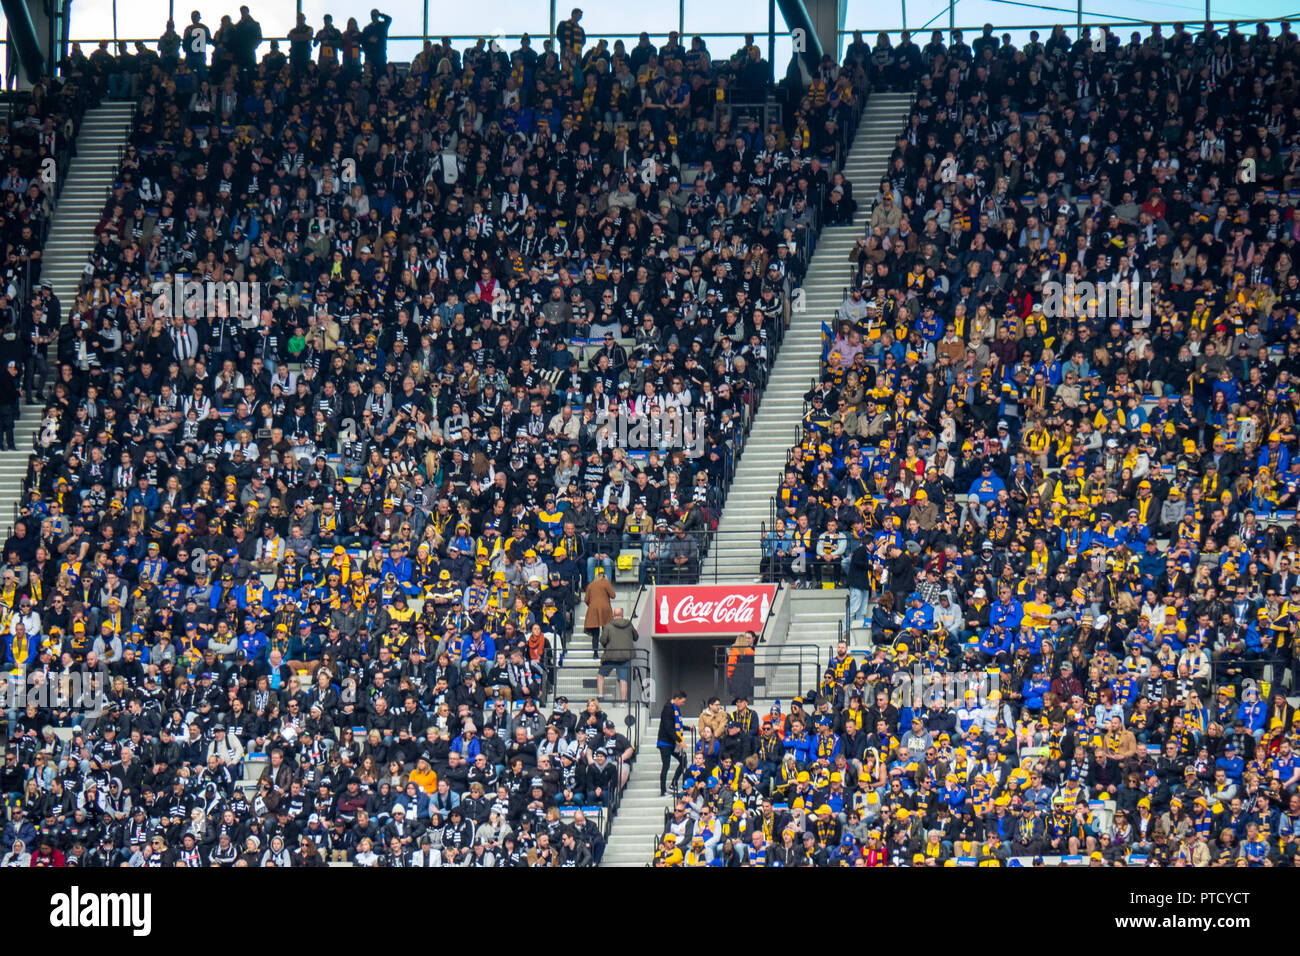 West Coast Eagles and Collingwood fans and supporters in their seats at 2018 AFL Grand Final at MCG Melbourne Victoria Australia. - Stock Image